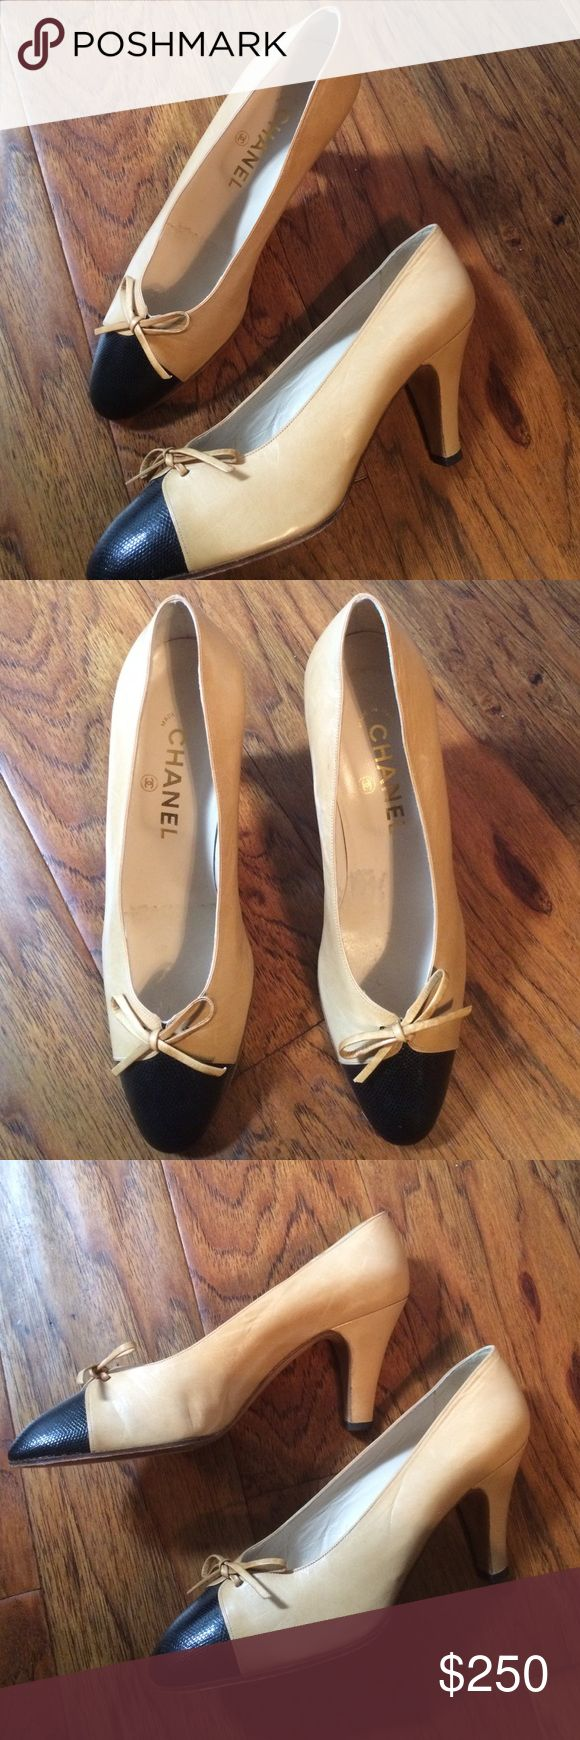 Chanel Vintage Two Toned Heels Beautiful tan leather heels with black textured leather across the toe and adorable bows. Light wear, great condition with only a tiny scuff on the left heel( see pic).  Authentic. Made in Italy. Chanel Shoes Heels